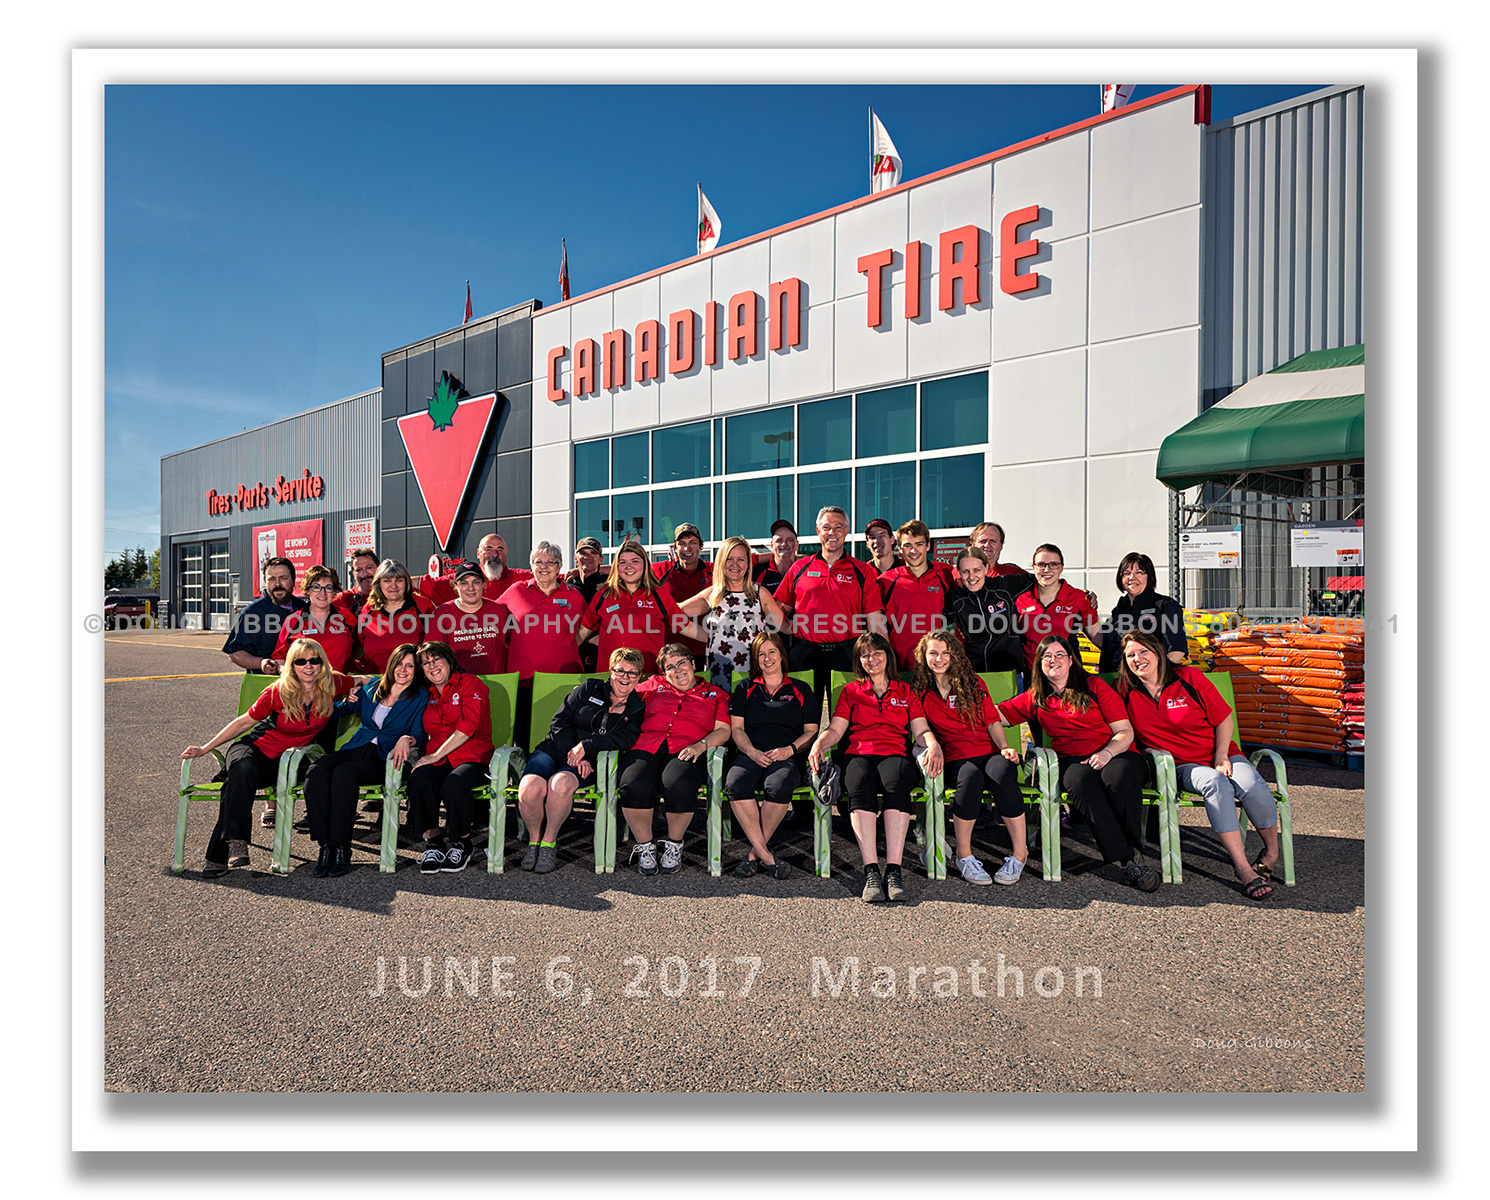 Canadian-tire.